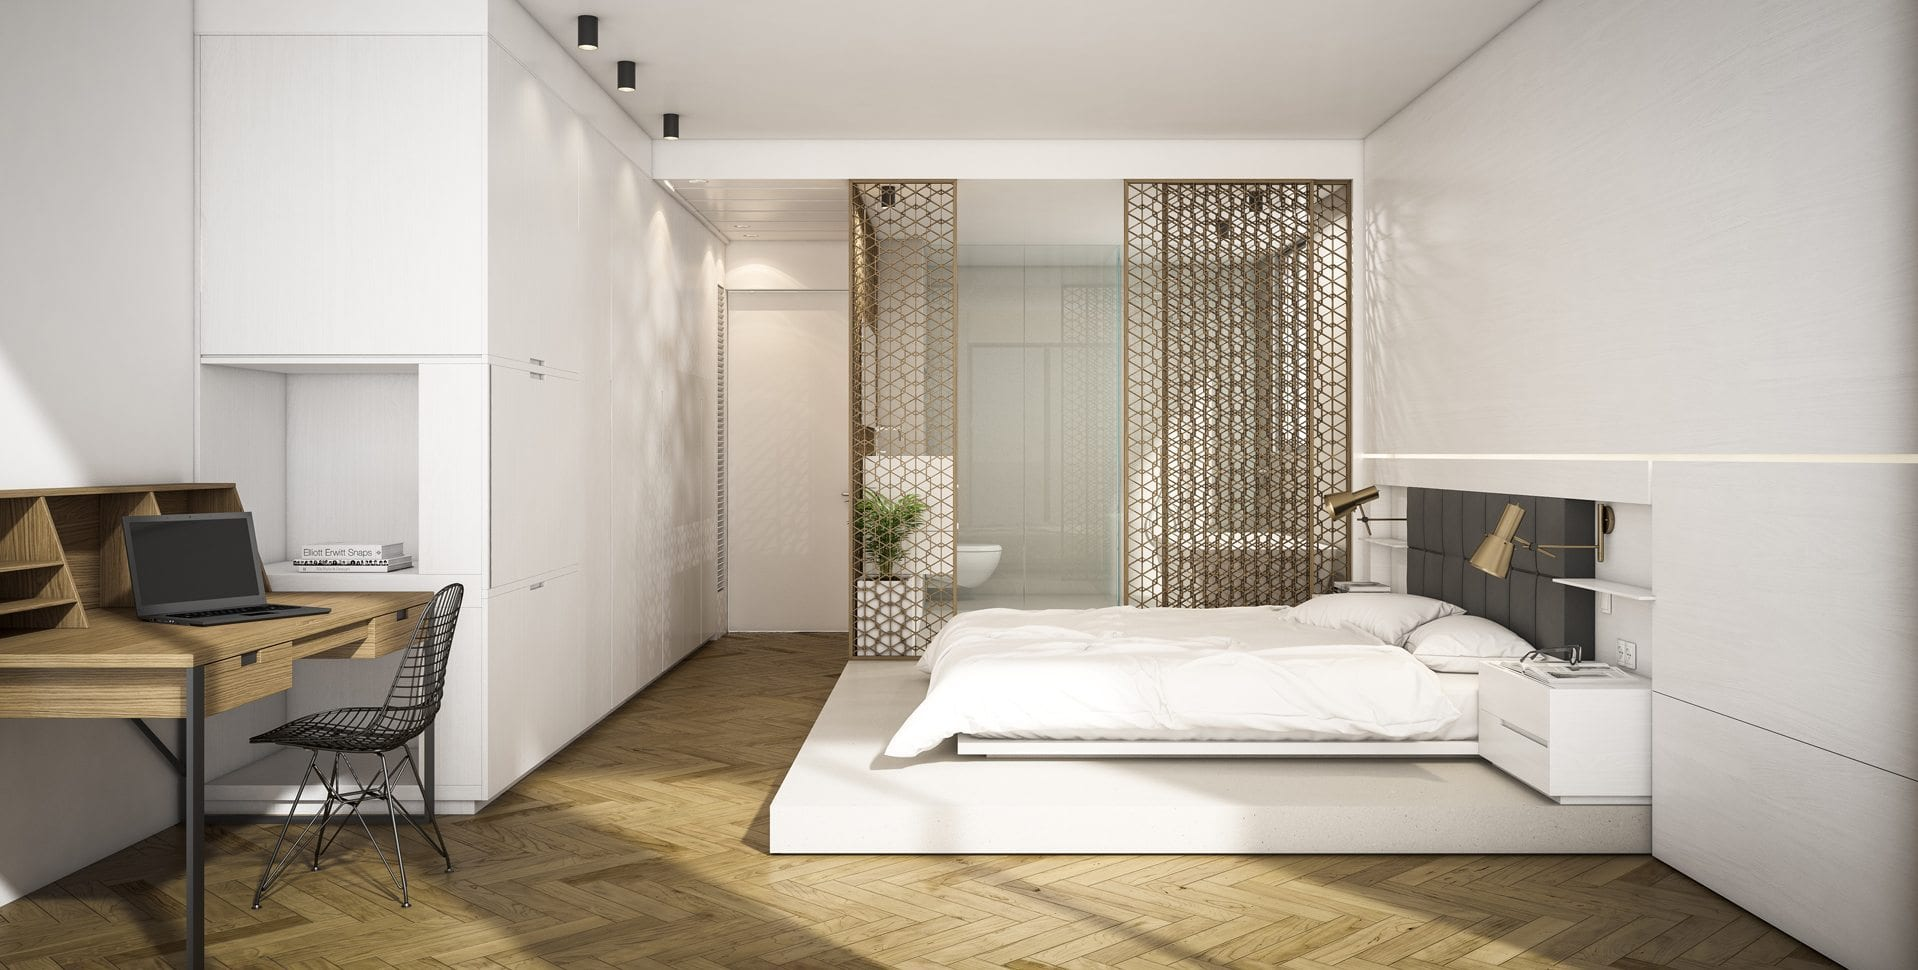 Maayan-Golan_Architectural-Visualization_ duplex-interior-visualization_bedroom_design-hazak-studio_05